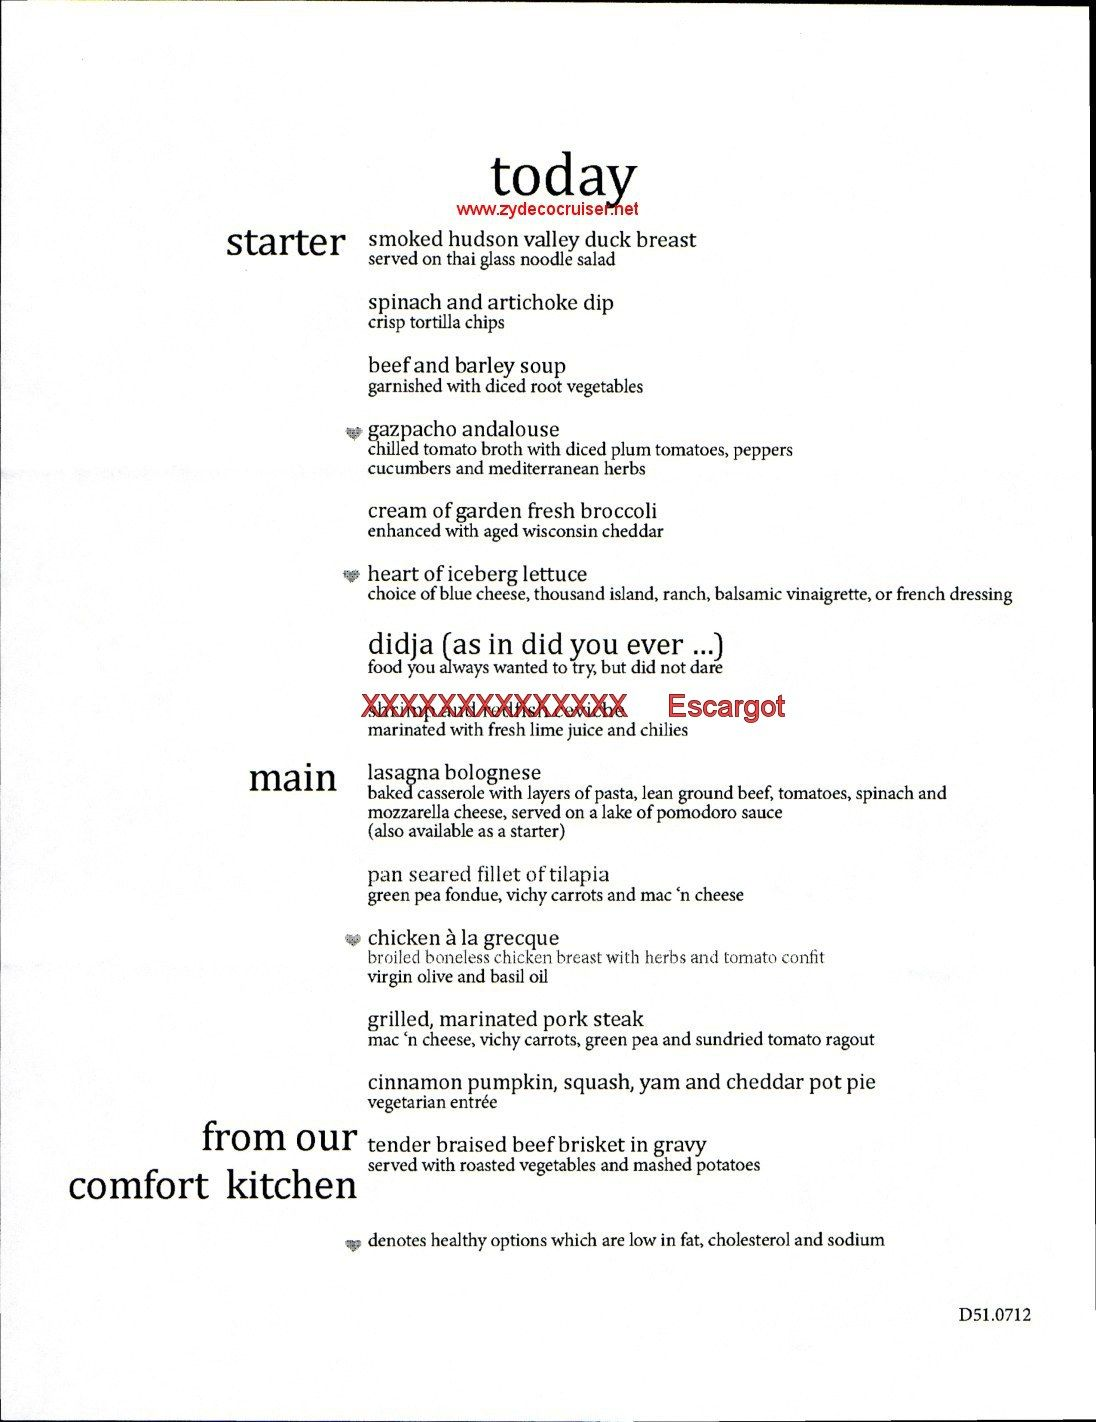 Carnival Elation Mdr Dinner Menu 1  Just A Cruising  Pinterest Magnificent Carnival Cruise Dining Room Menu Inspiration